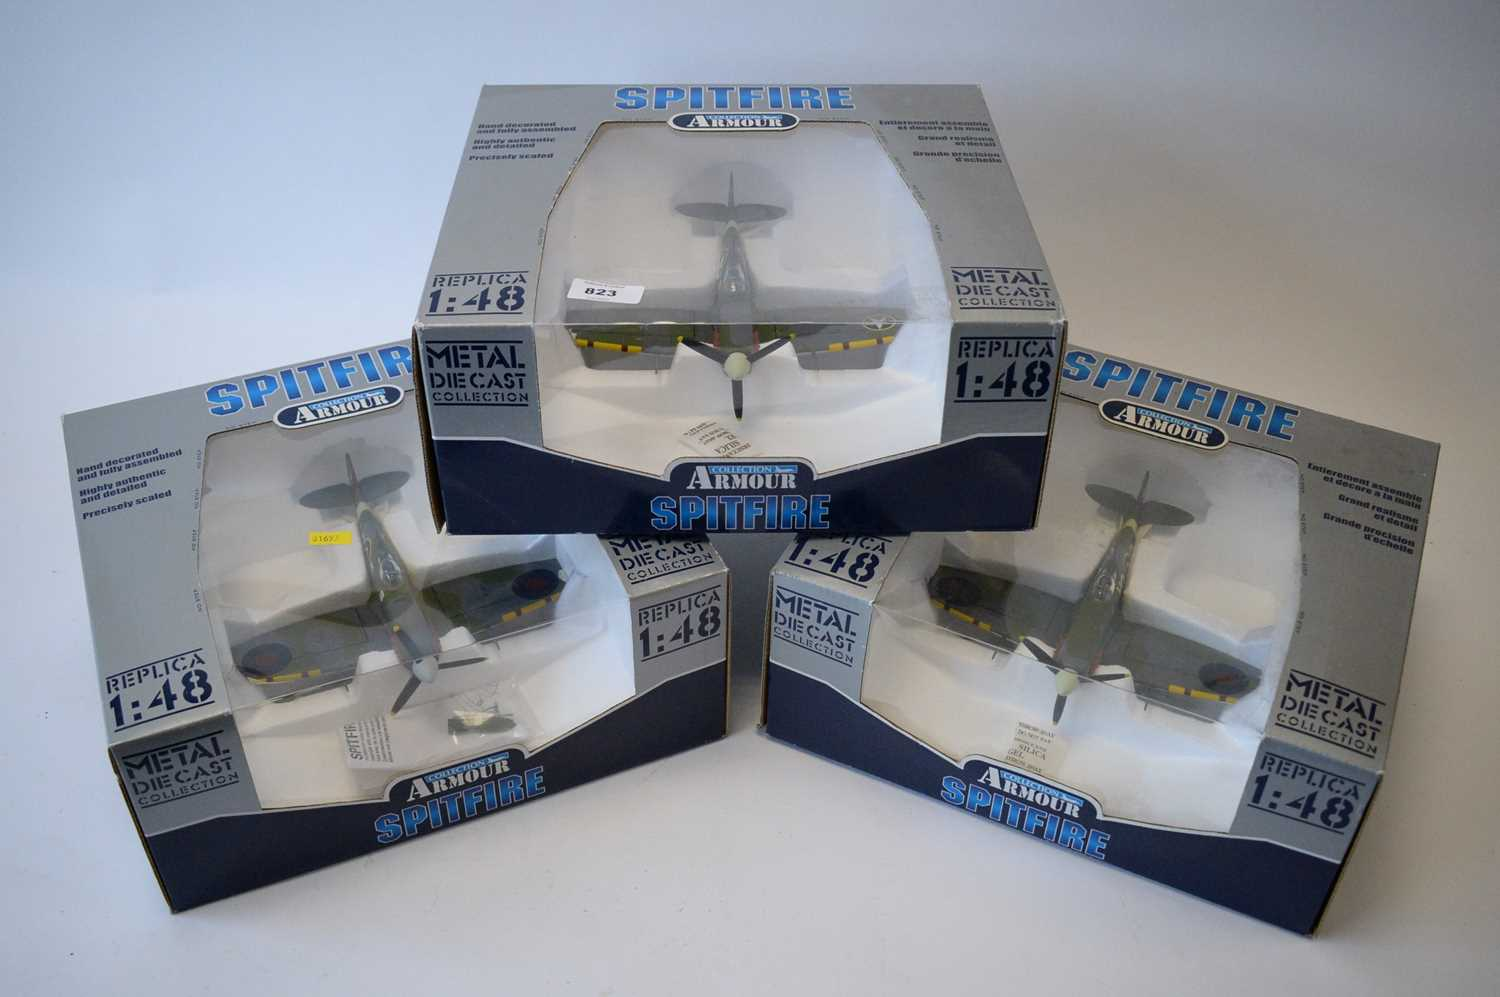 Lot 823 - Collection Armour 1:48 Scale metal diecast aeroplanes - Spitfire.